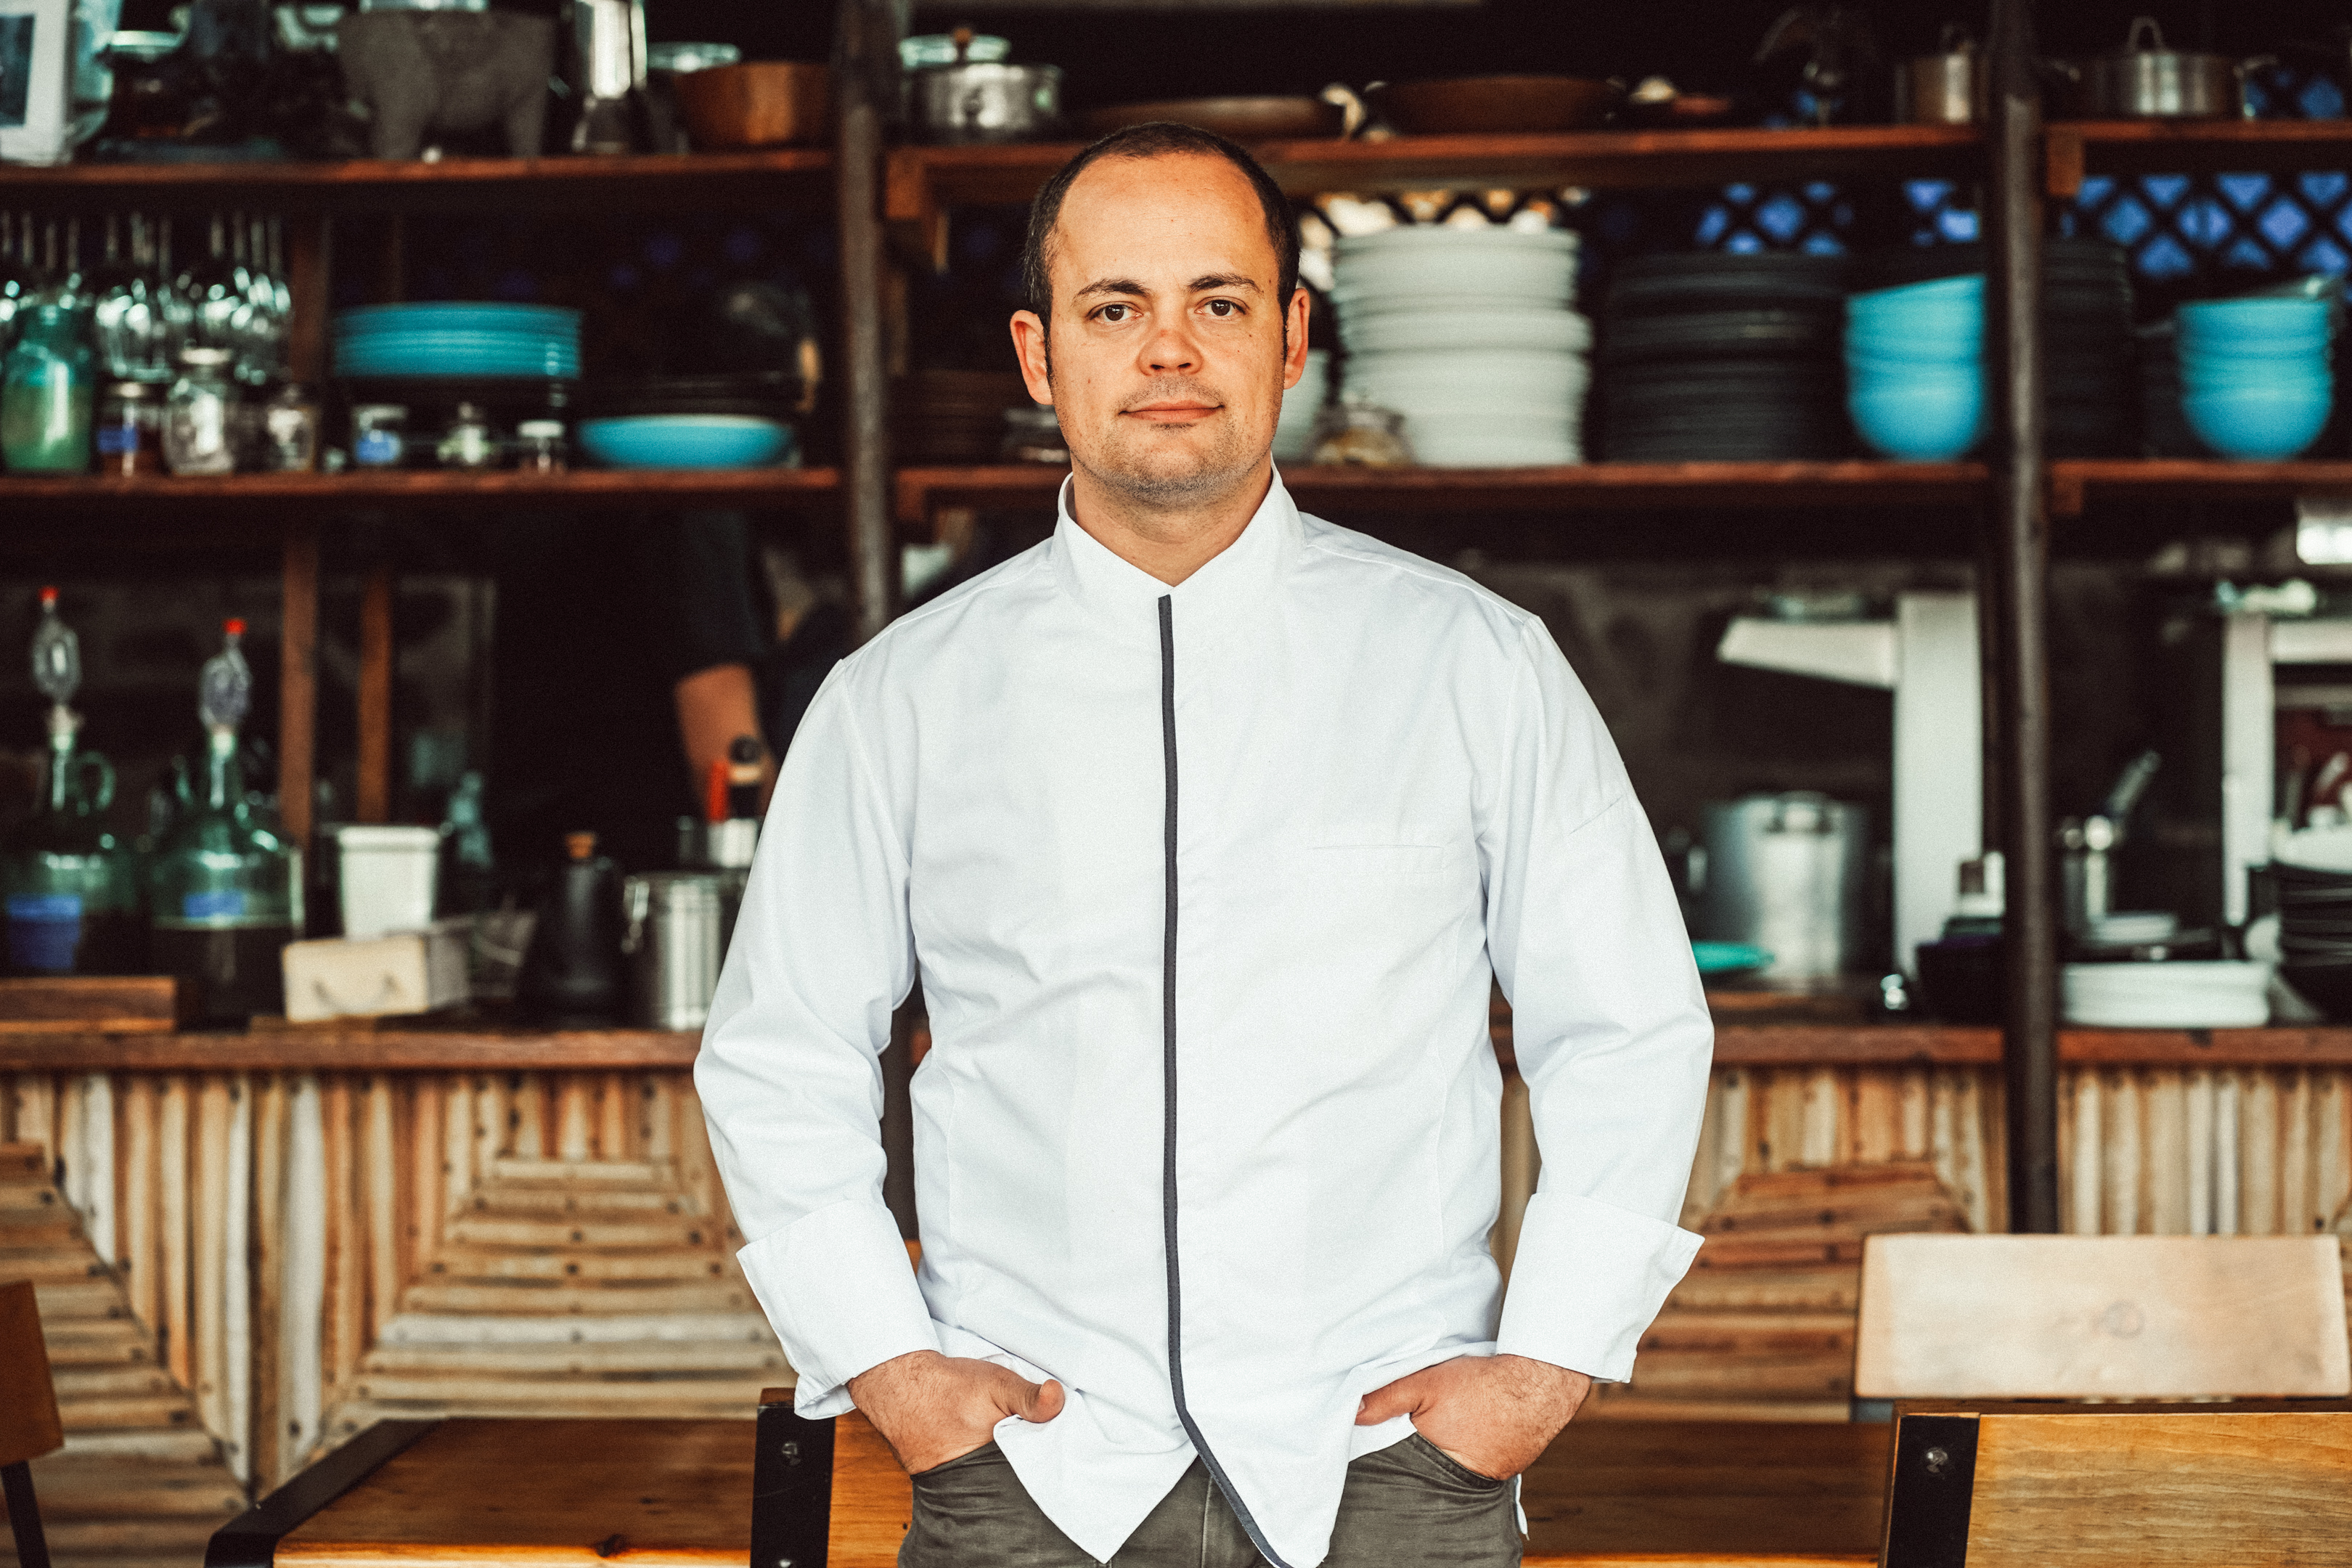 Chef Roberto Alcocer stands with his hands inside his pockets in the dining room of Malva restaurant in the Valle de Guadalupe